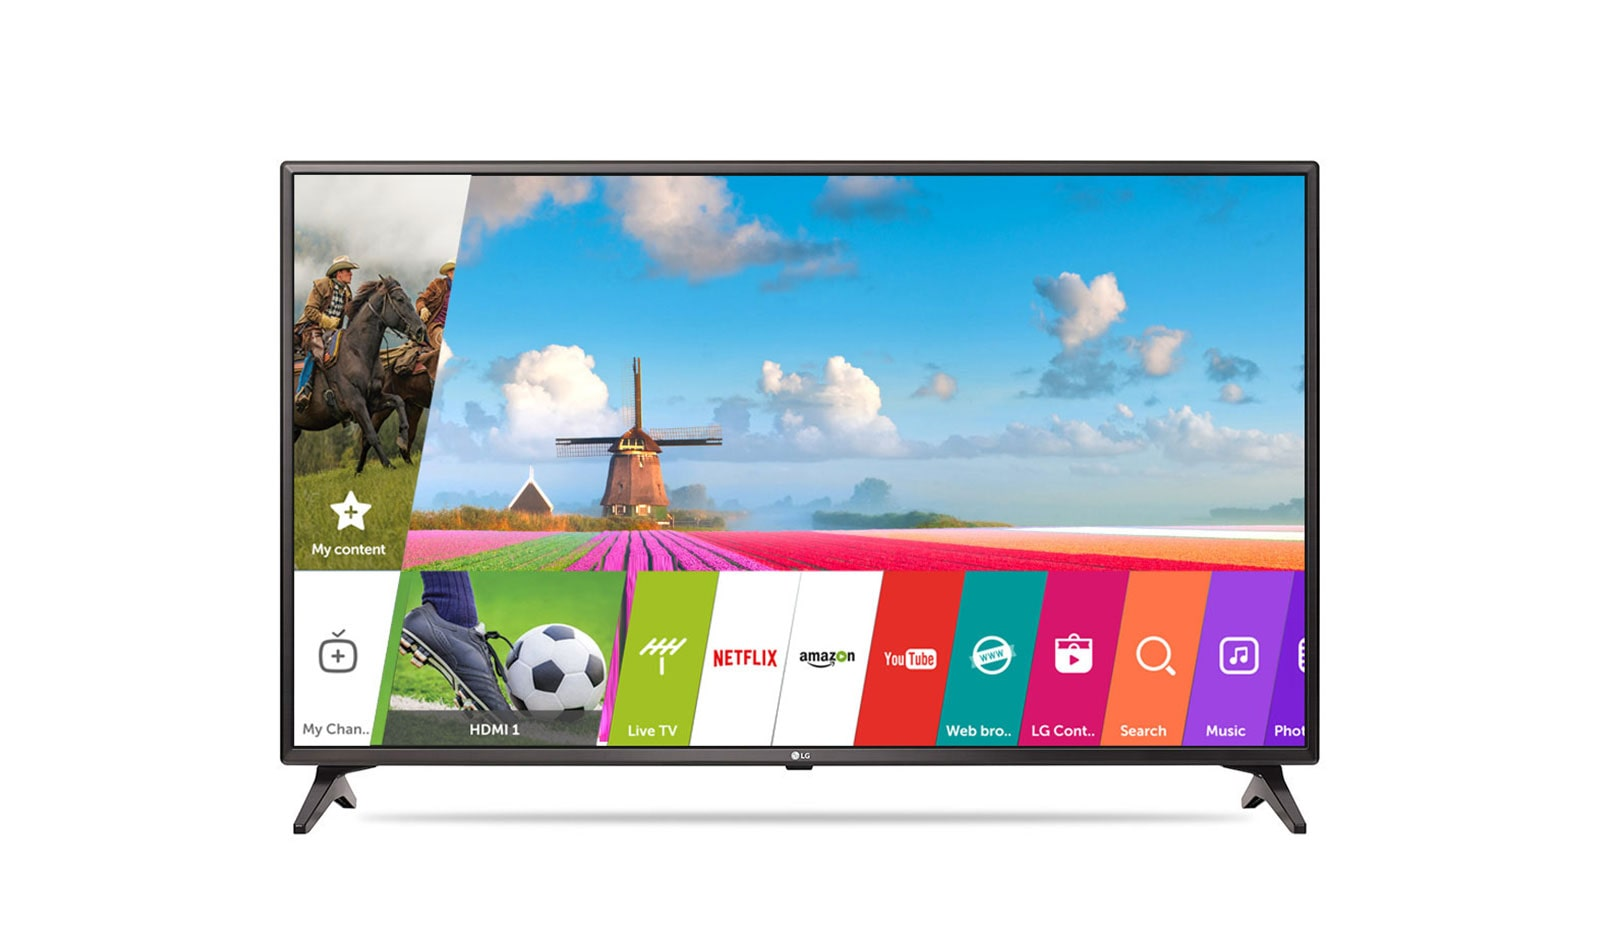 Tv Board 200 Cm Buy Lg 43lj554t Smart Led Tv With Webos Magic Remote